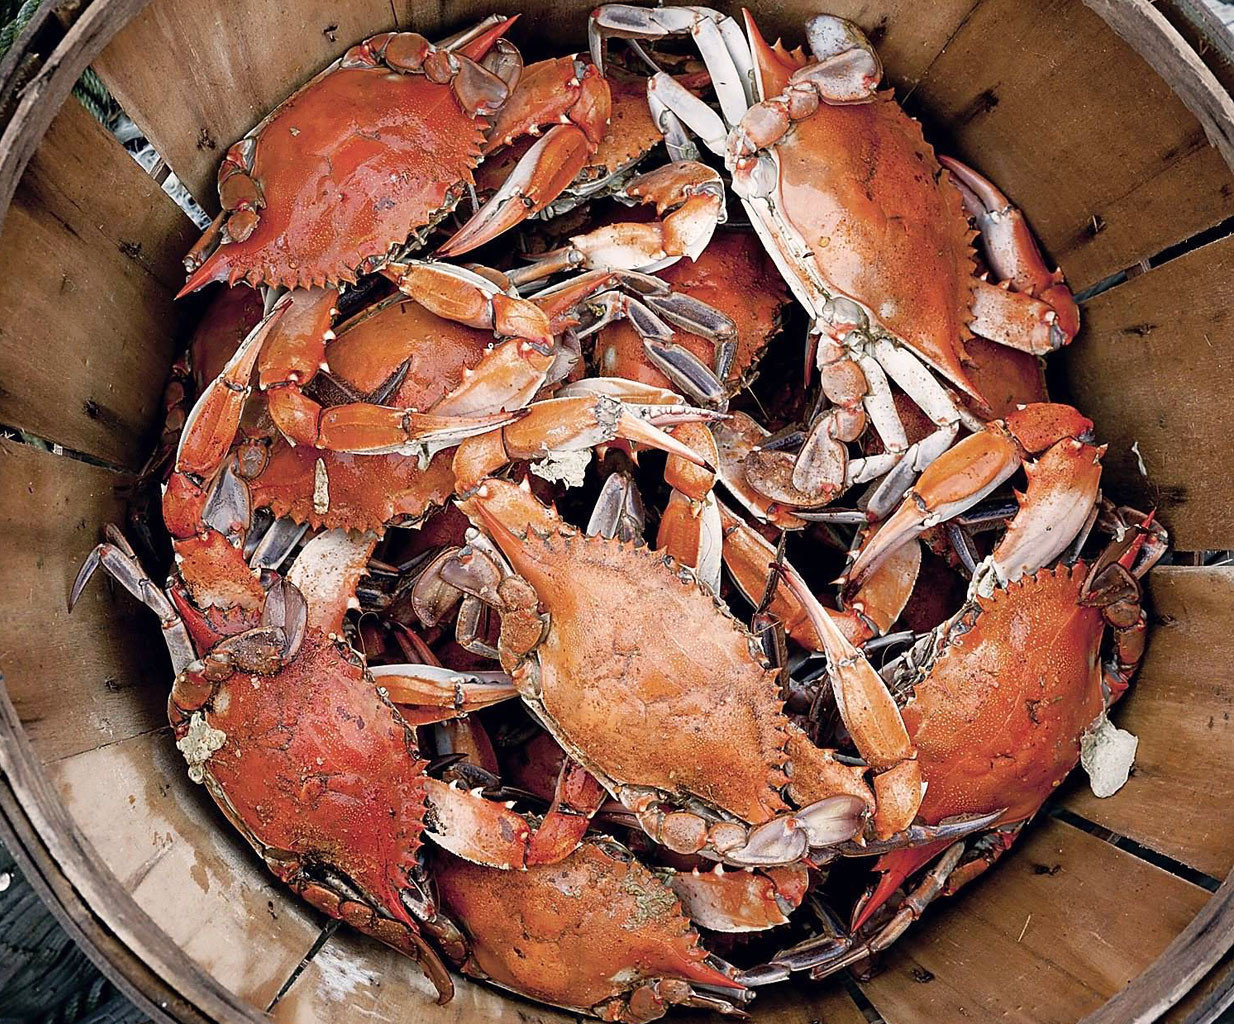 Secret Getaways Trip Ideas arthropod animal invertebrate food crab dungeness crab crustacean decapoda Seafood american lobster homarus animal source foods crab boil plant fish king crab lobster soft shell crab pan shellfish shrimp meat dirty cooked sliced